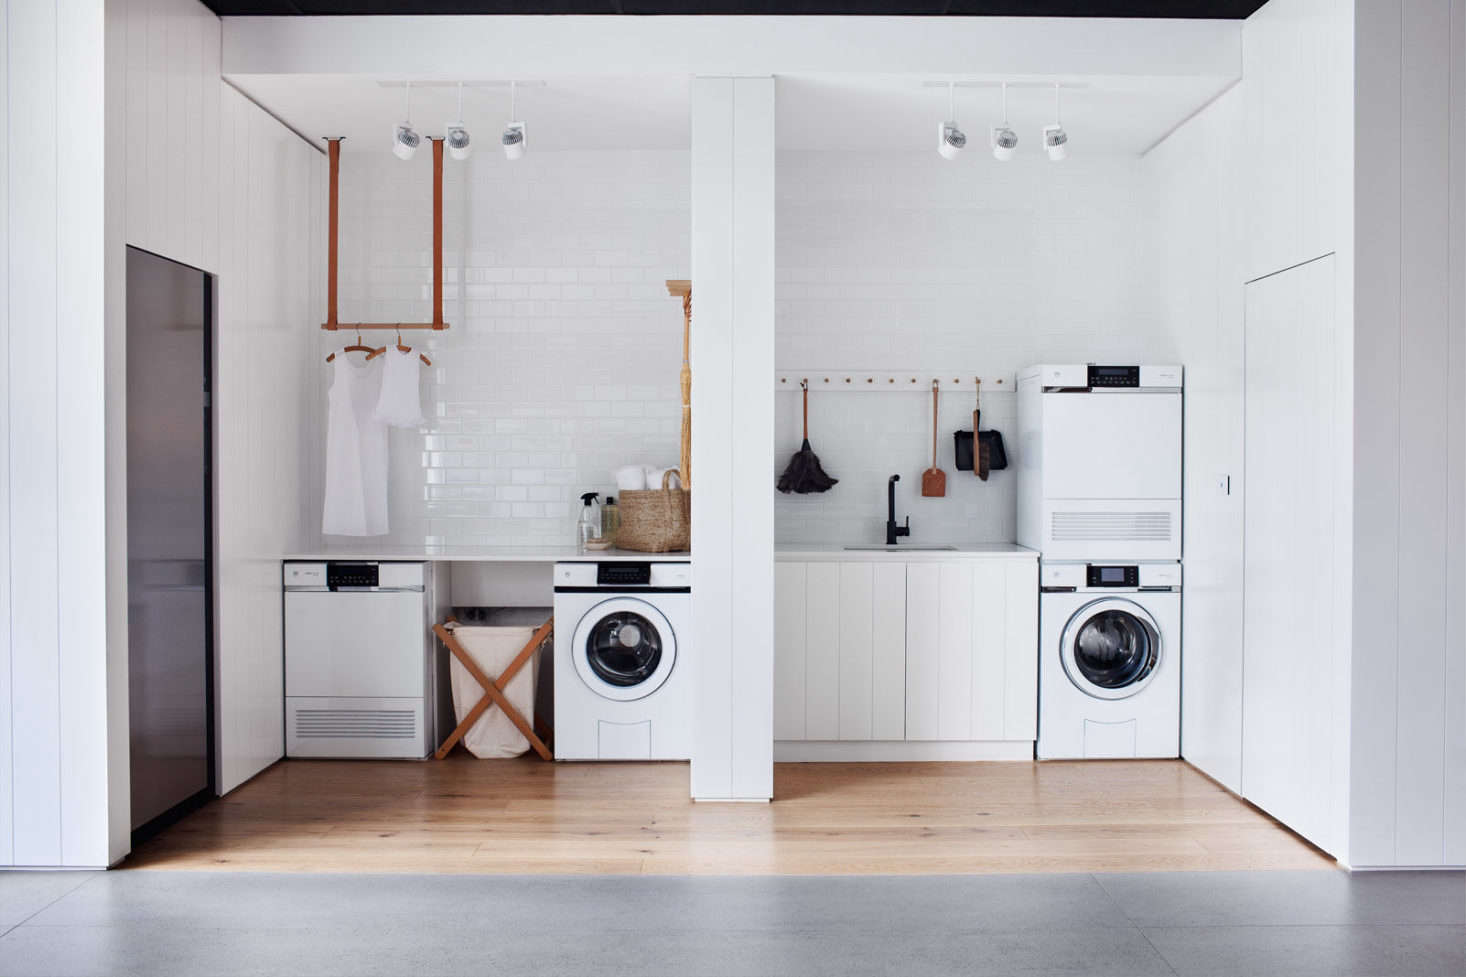 On the left side of a showroom, a washer and dryer are installed side by side; at right, the units are stacked. See Steal This Look: All-White Laundry Room in Melbourne for more.